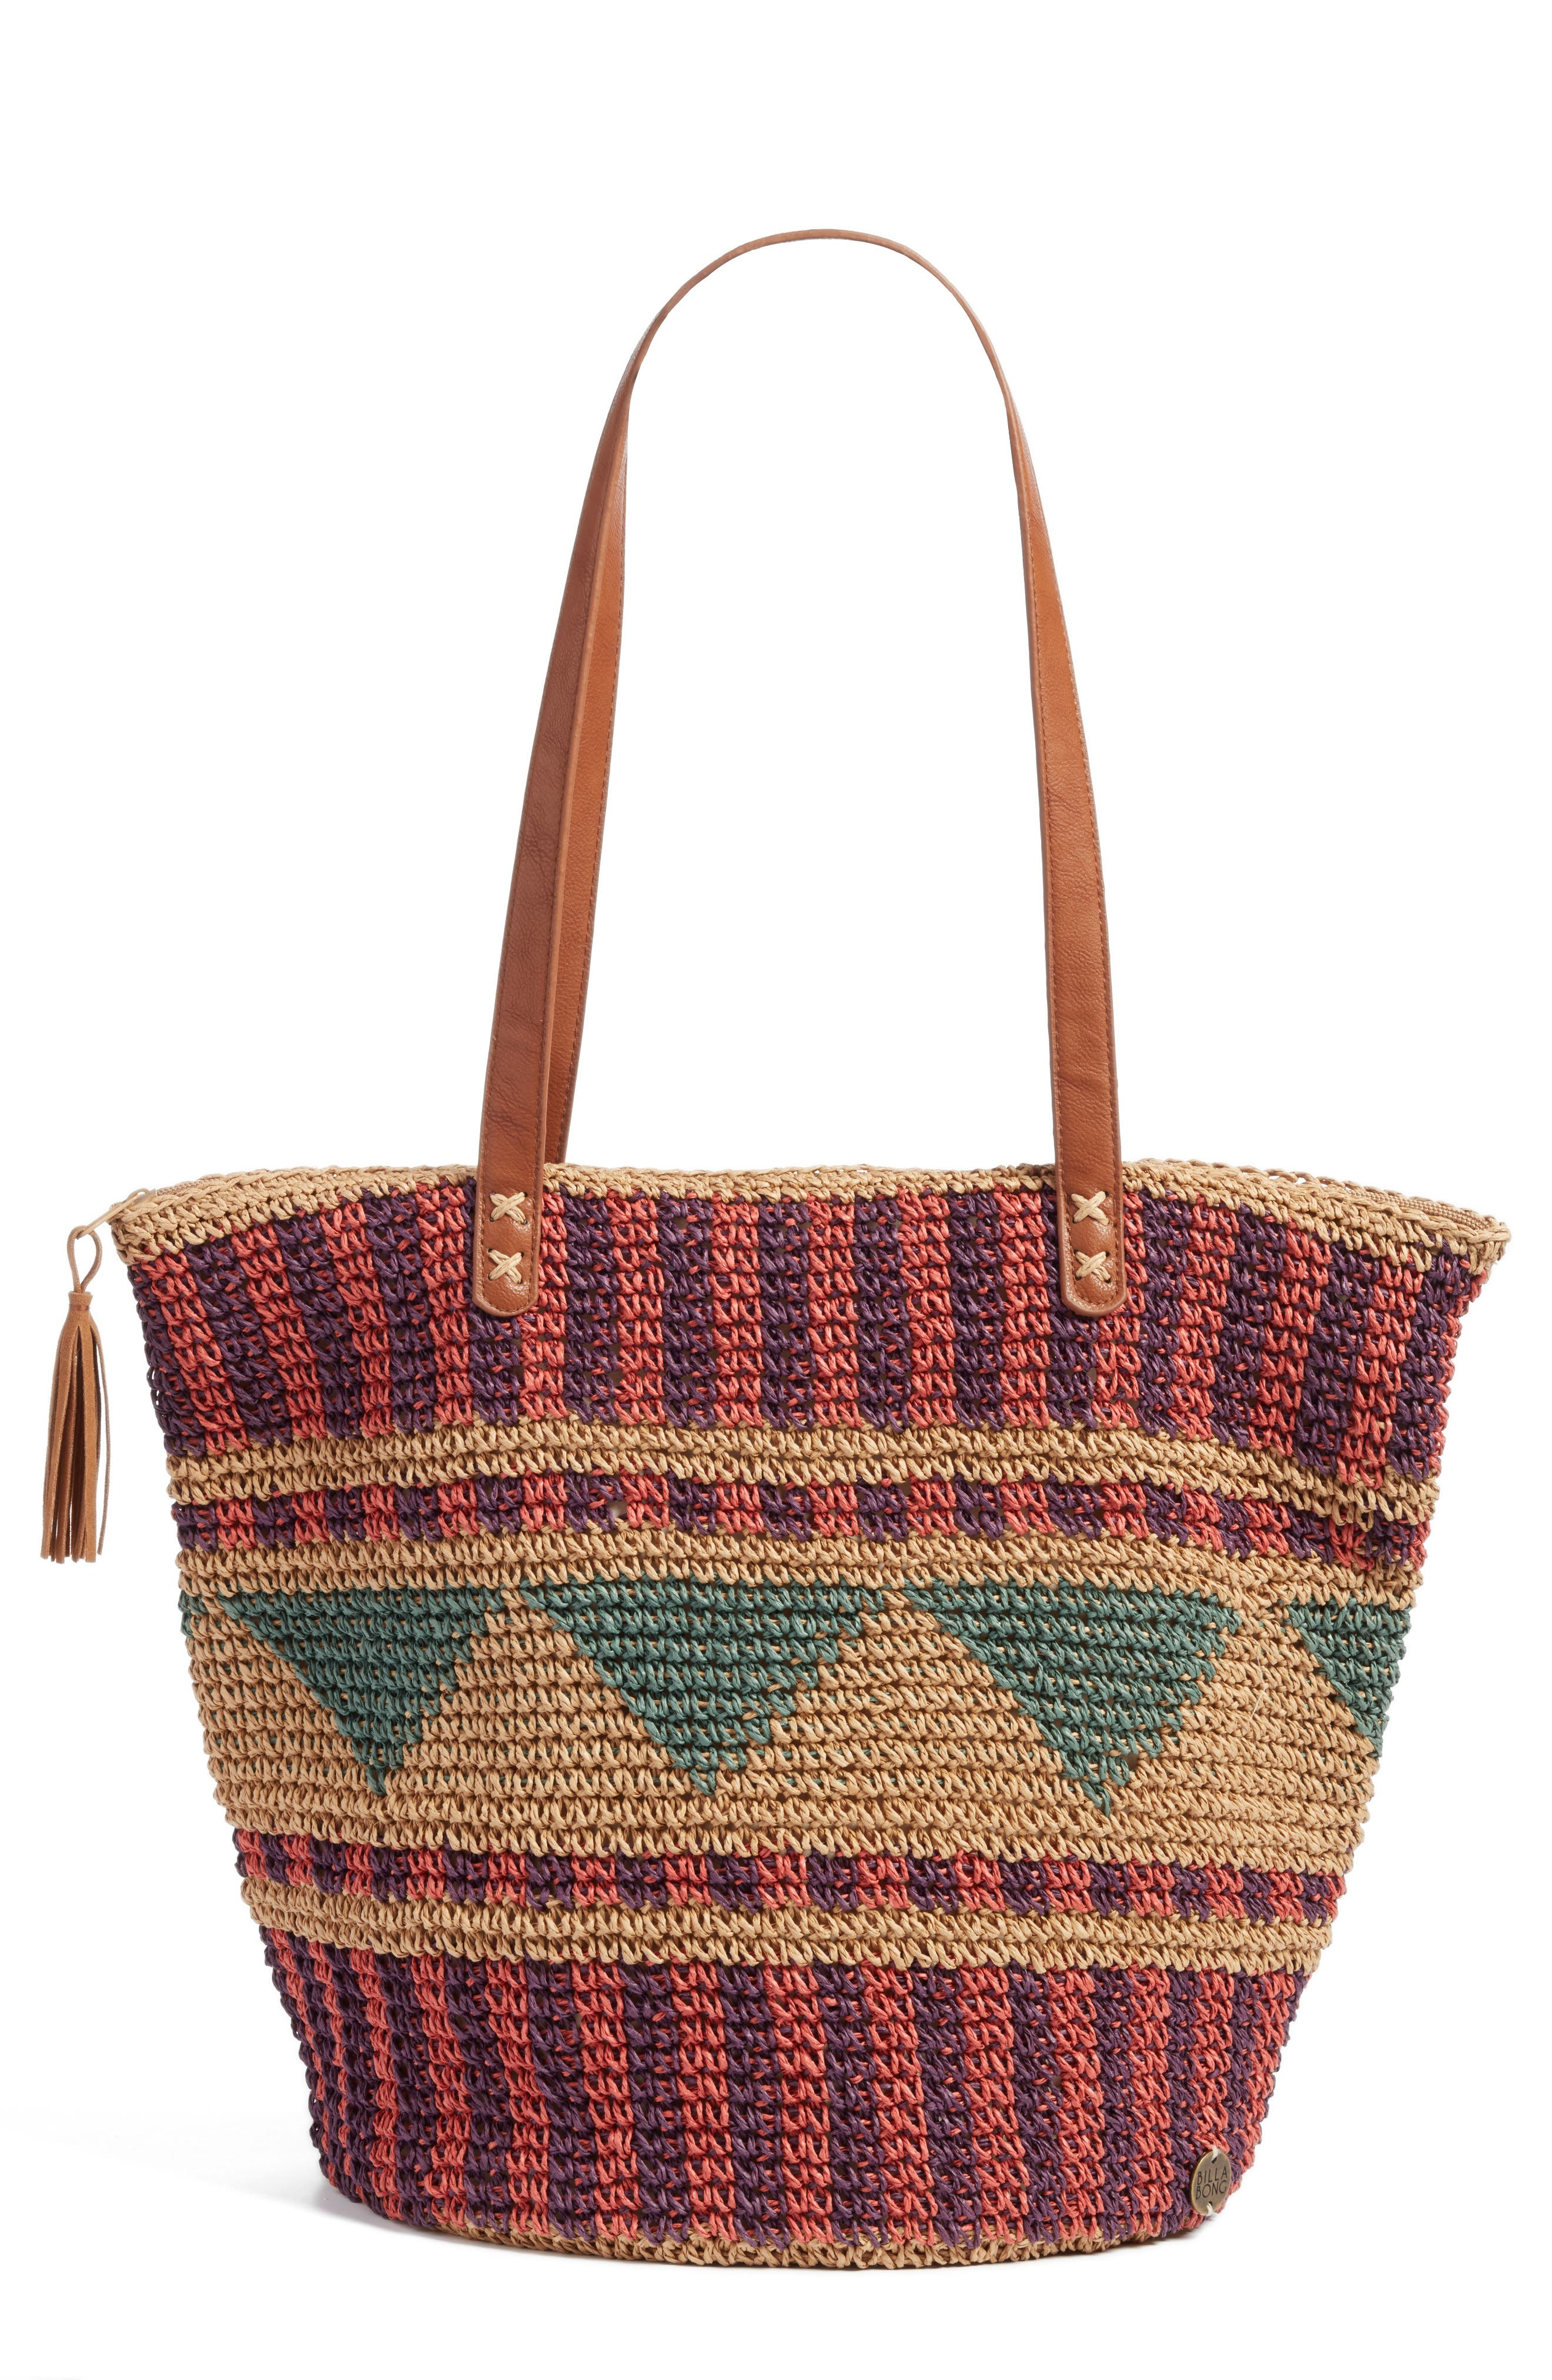 East of Dover Print Straw Tote,                             Main thumbnail 1, color,                             Rosewater